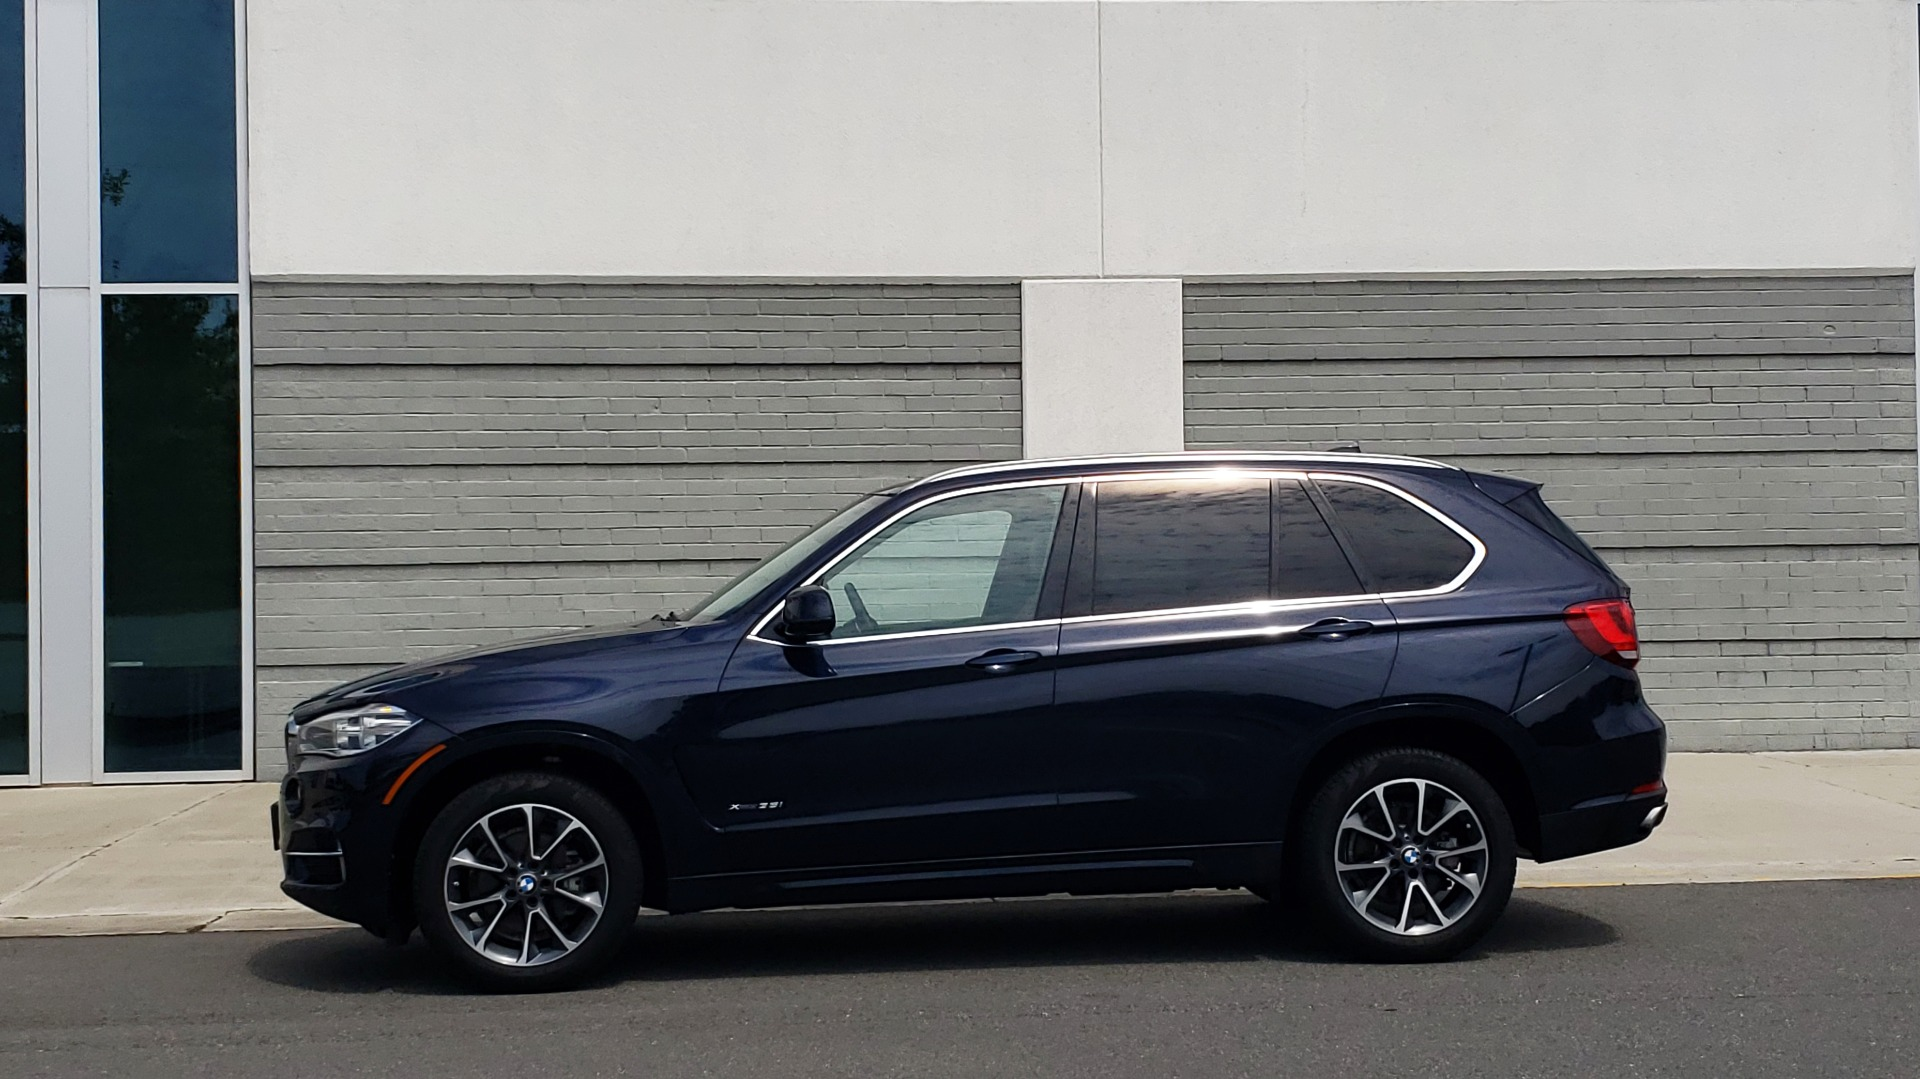 Used 2018 BMW X5 XDRIVE35I PREMIUM / LUXURY / DRVR ASST / HUD / LANE WARNING / REARVIEW for sale $43,695 at Formula Imports in Charlotte NC 28227 5